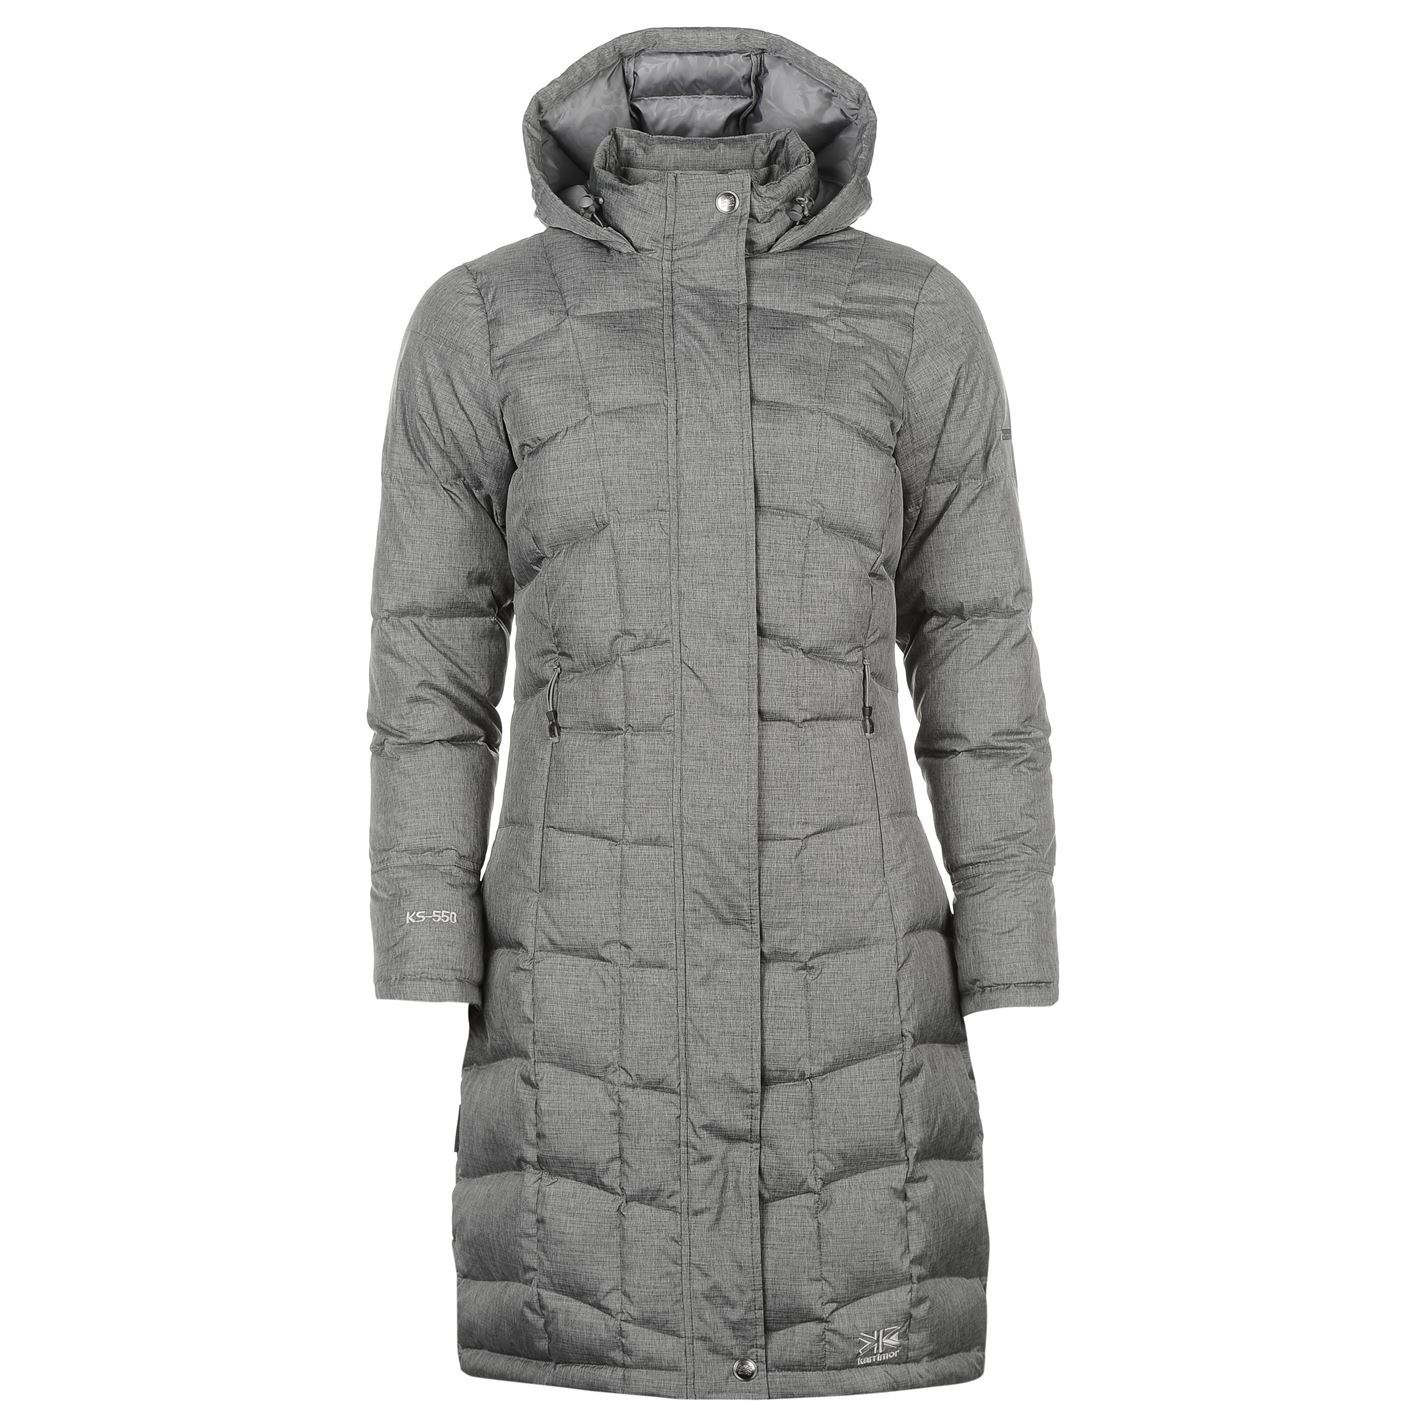 c6ce2c73820 Karrimor Long Down Jacket Ladies Bringing pure style in pure comfort, the  Karrimor Long Down Jacket features a full zip fastening with chin guard and  popper ...